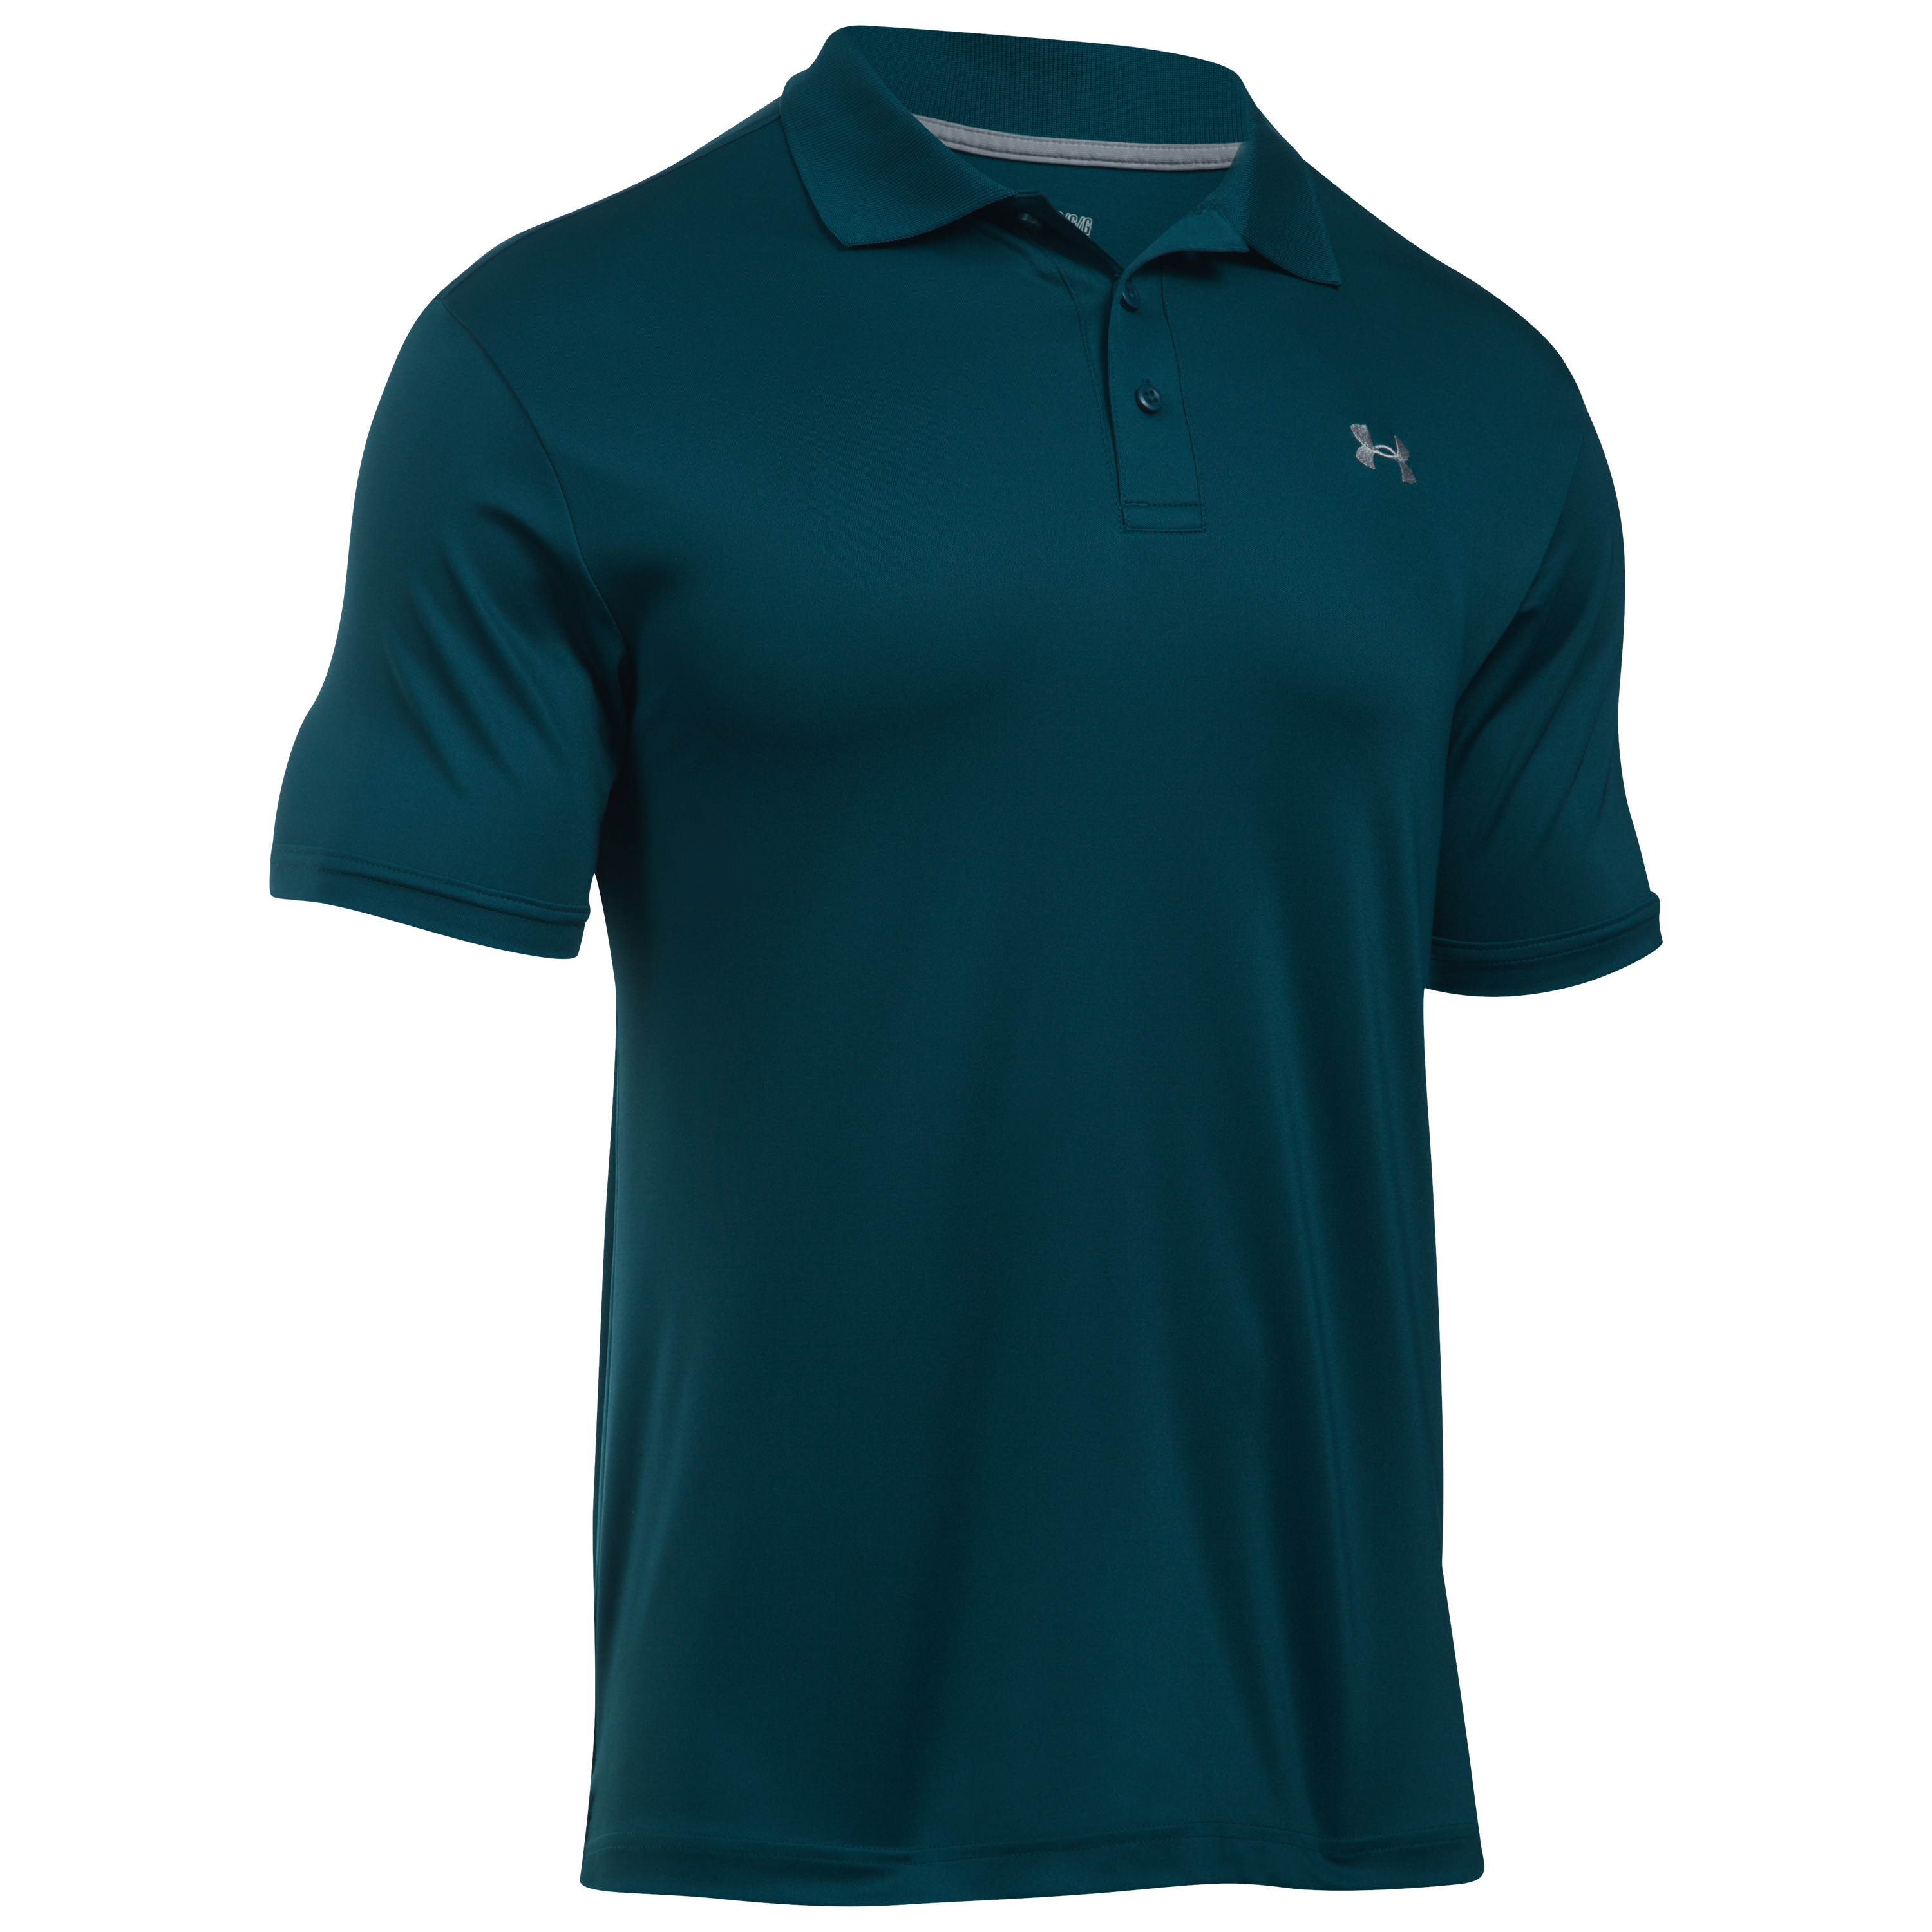 Under Armour Poloshirt Performance petrol